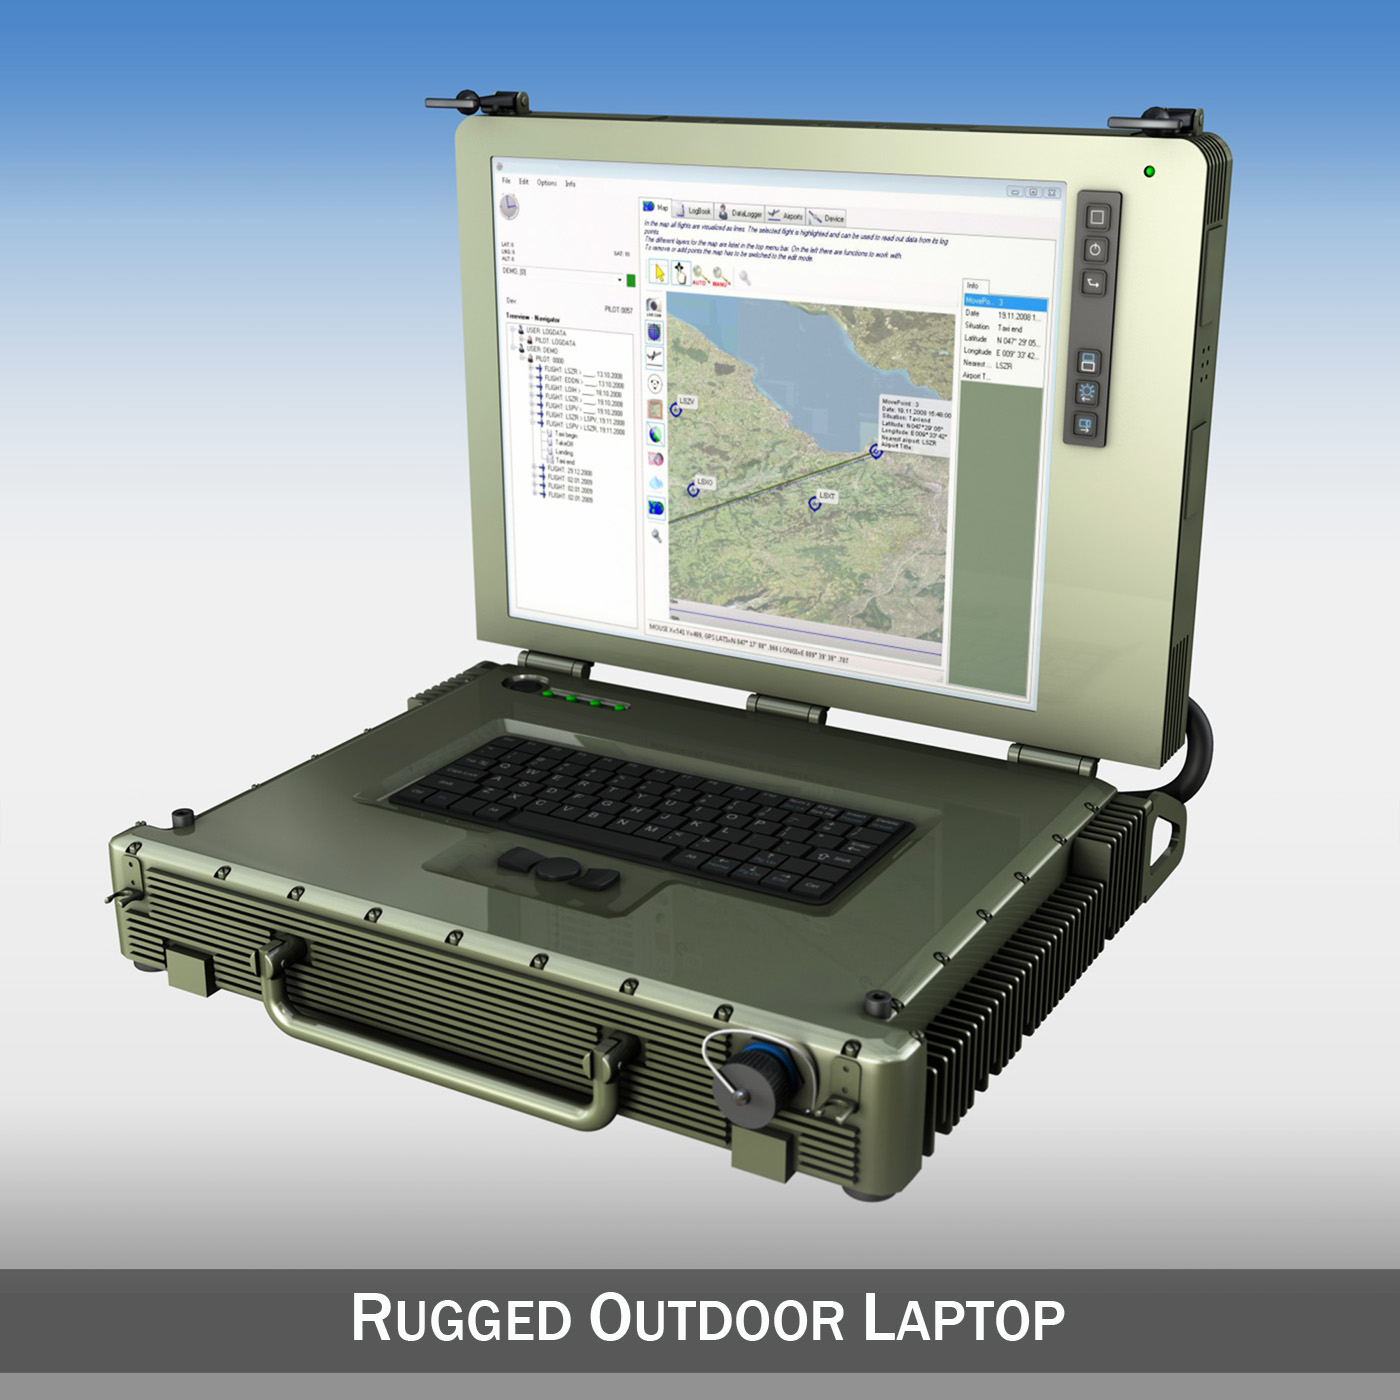 rugged military outdoor laptop 3d model 3ds fbx c4d lwo obj 189351